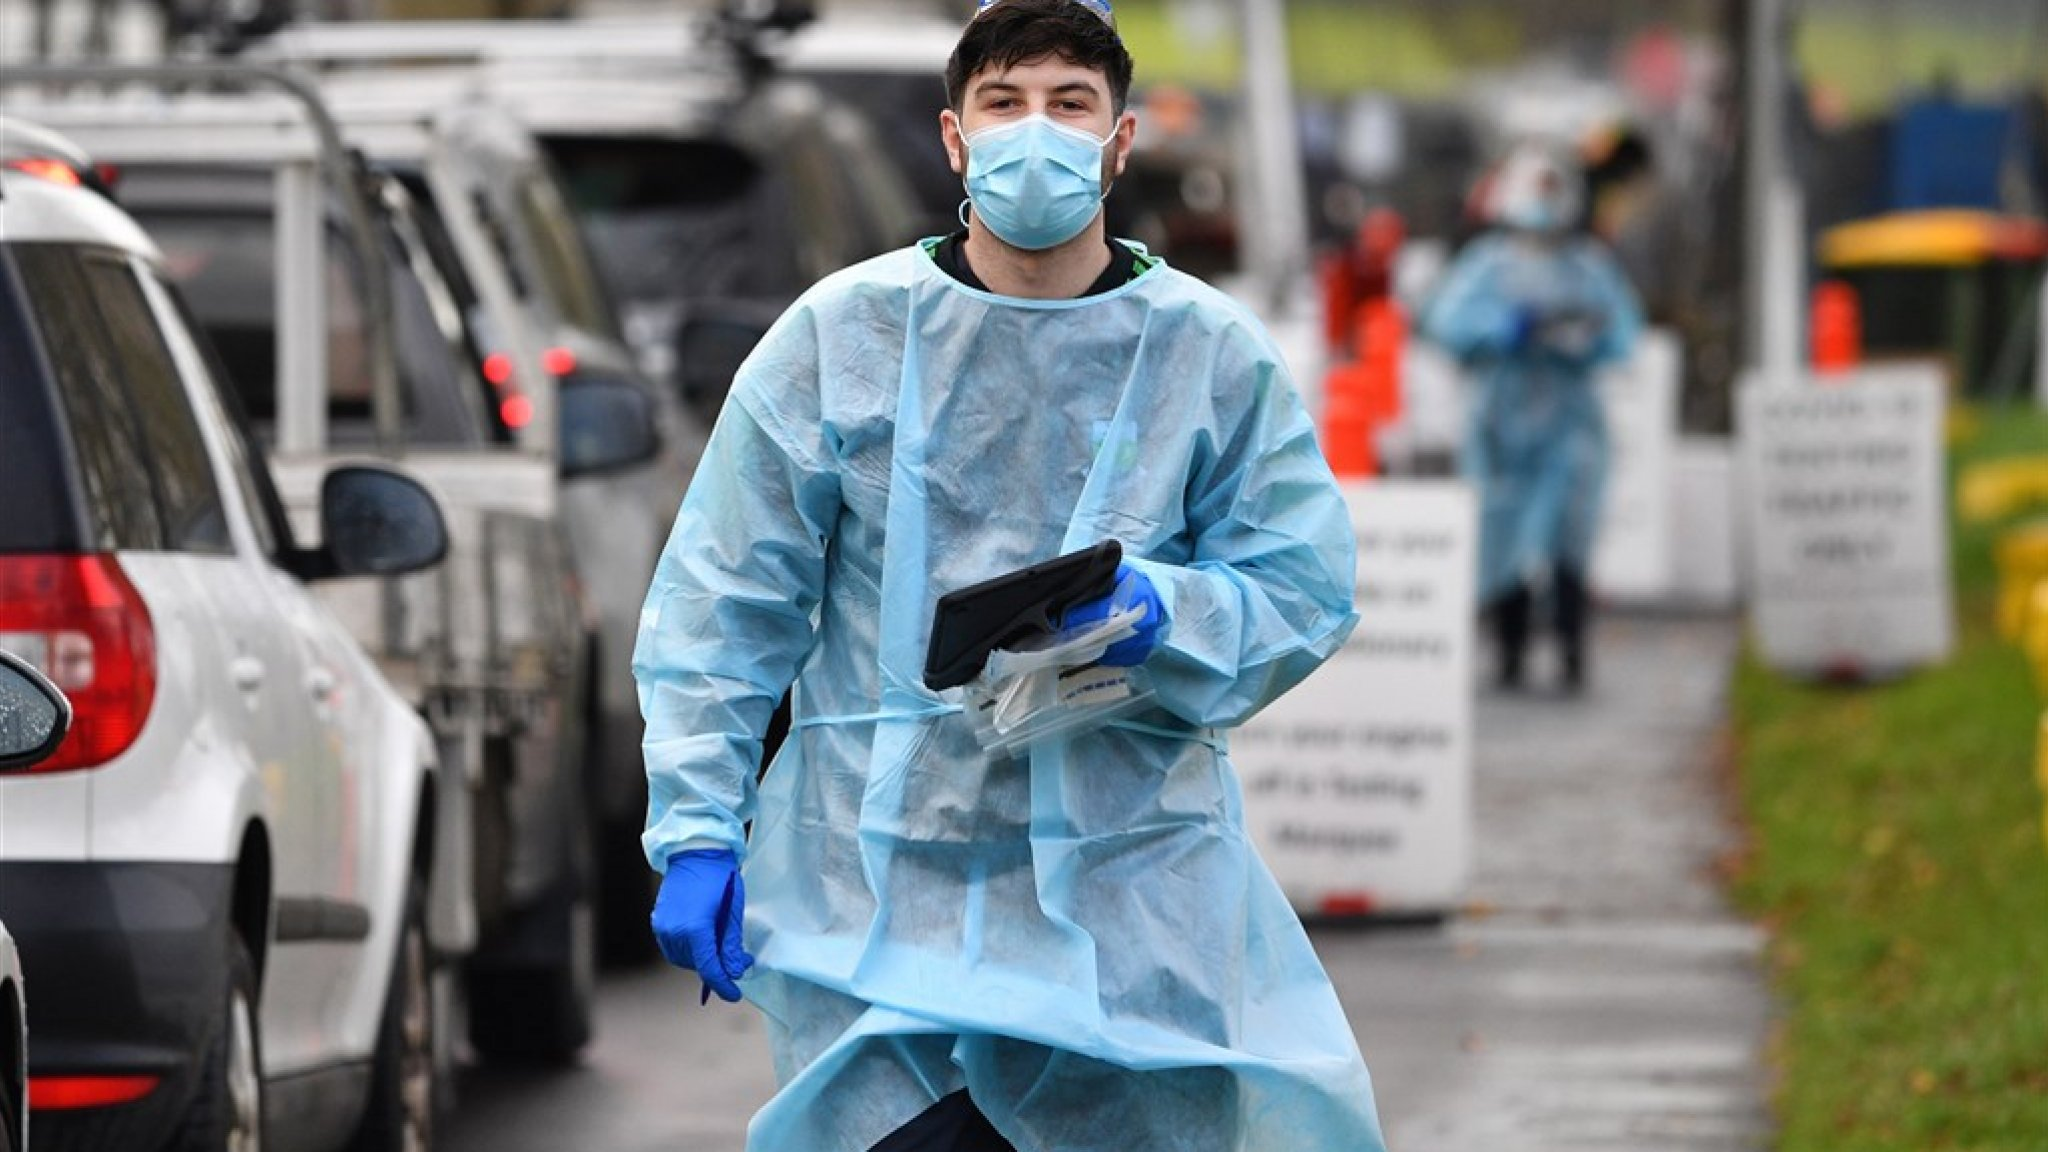 26 infections and the Australian government will be locked up for a week